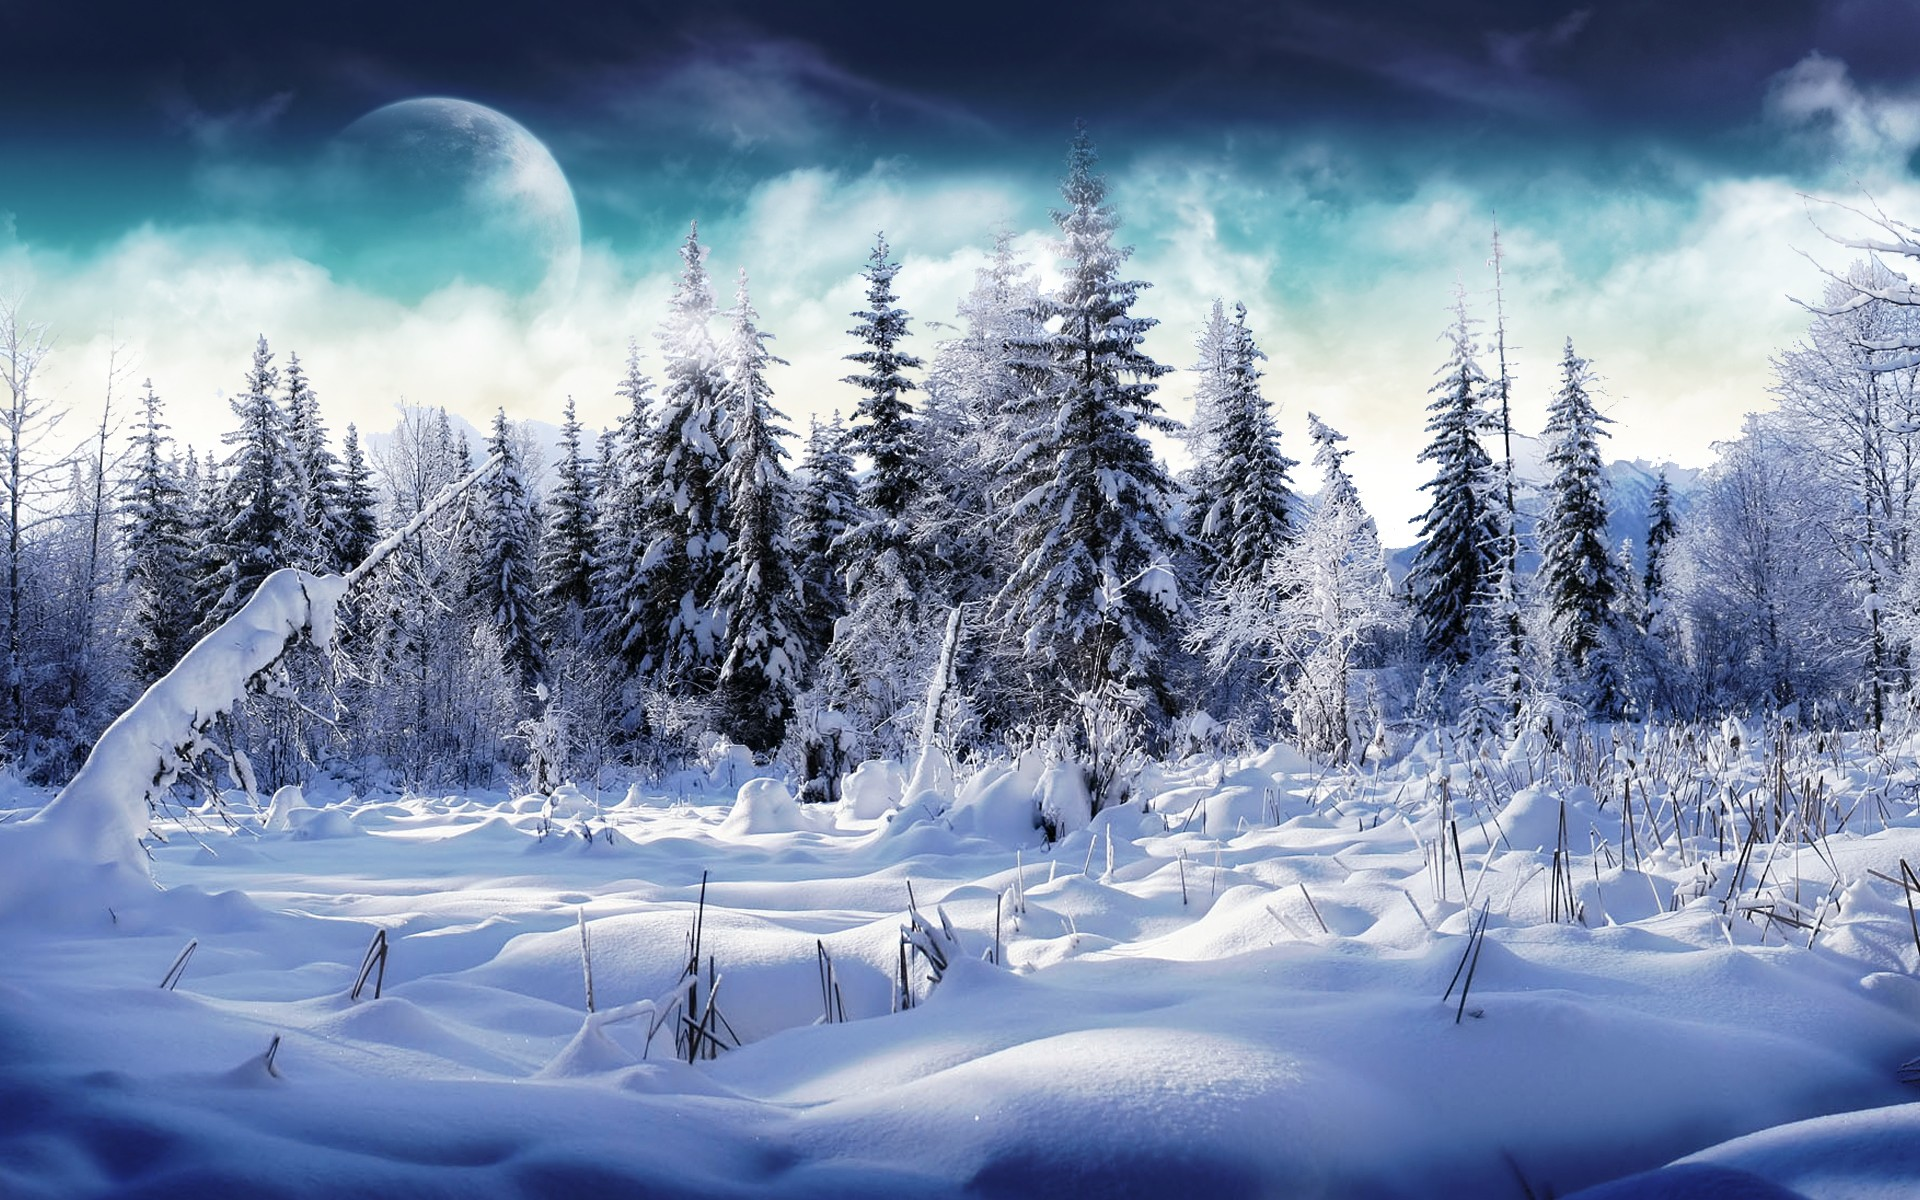 best winter wallpapers best winter wallpapers best winter wallpapers 1920x1200